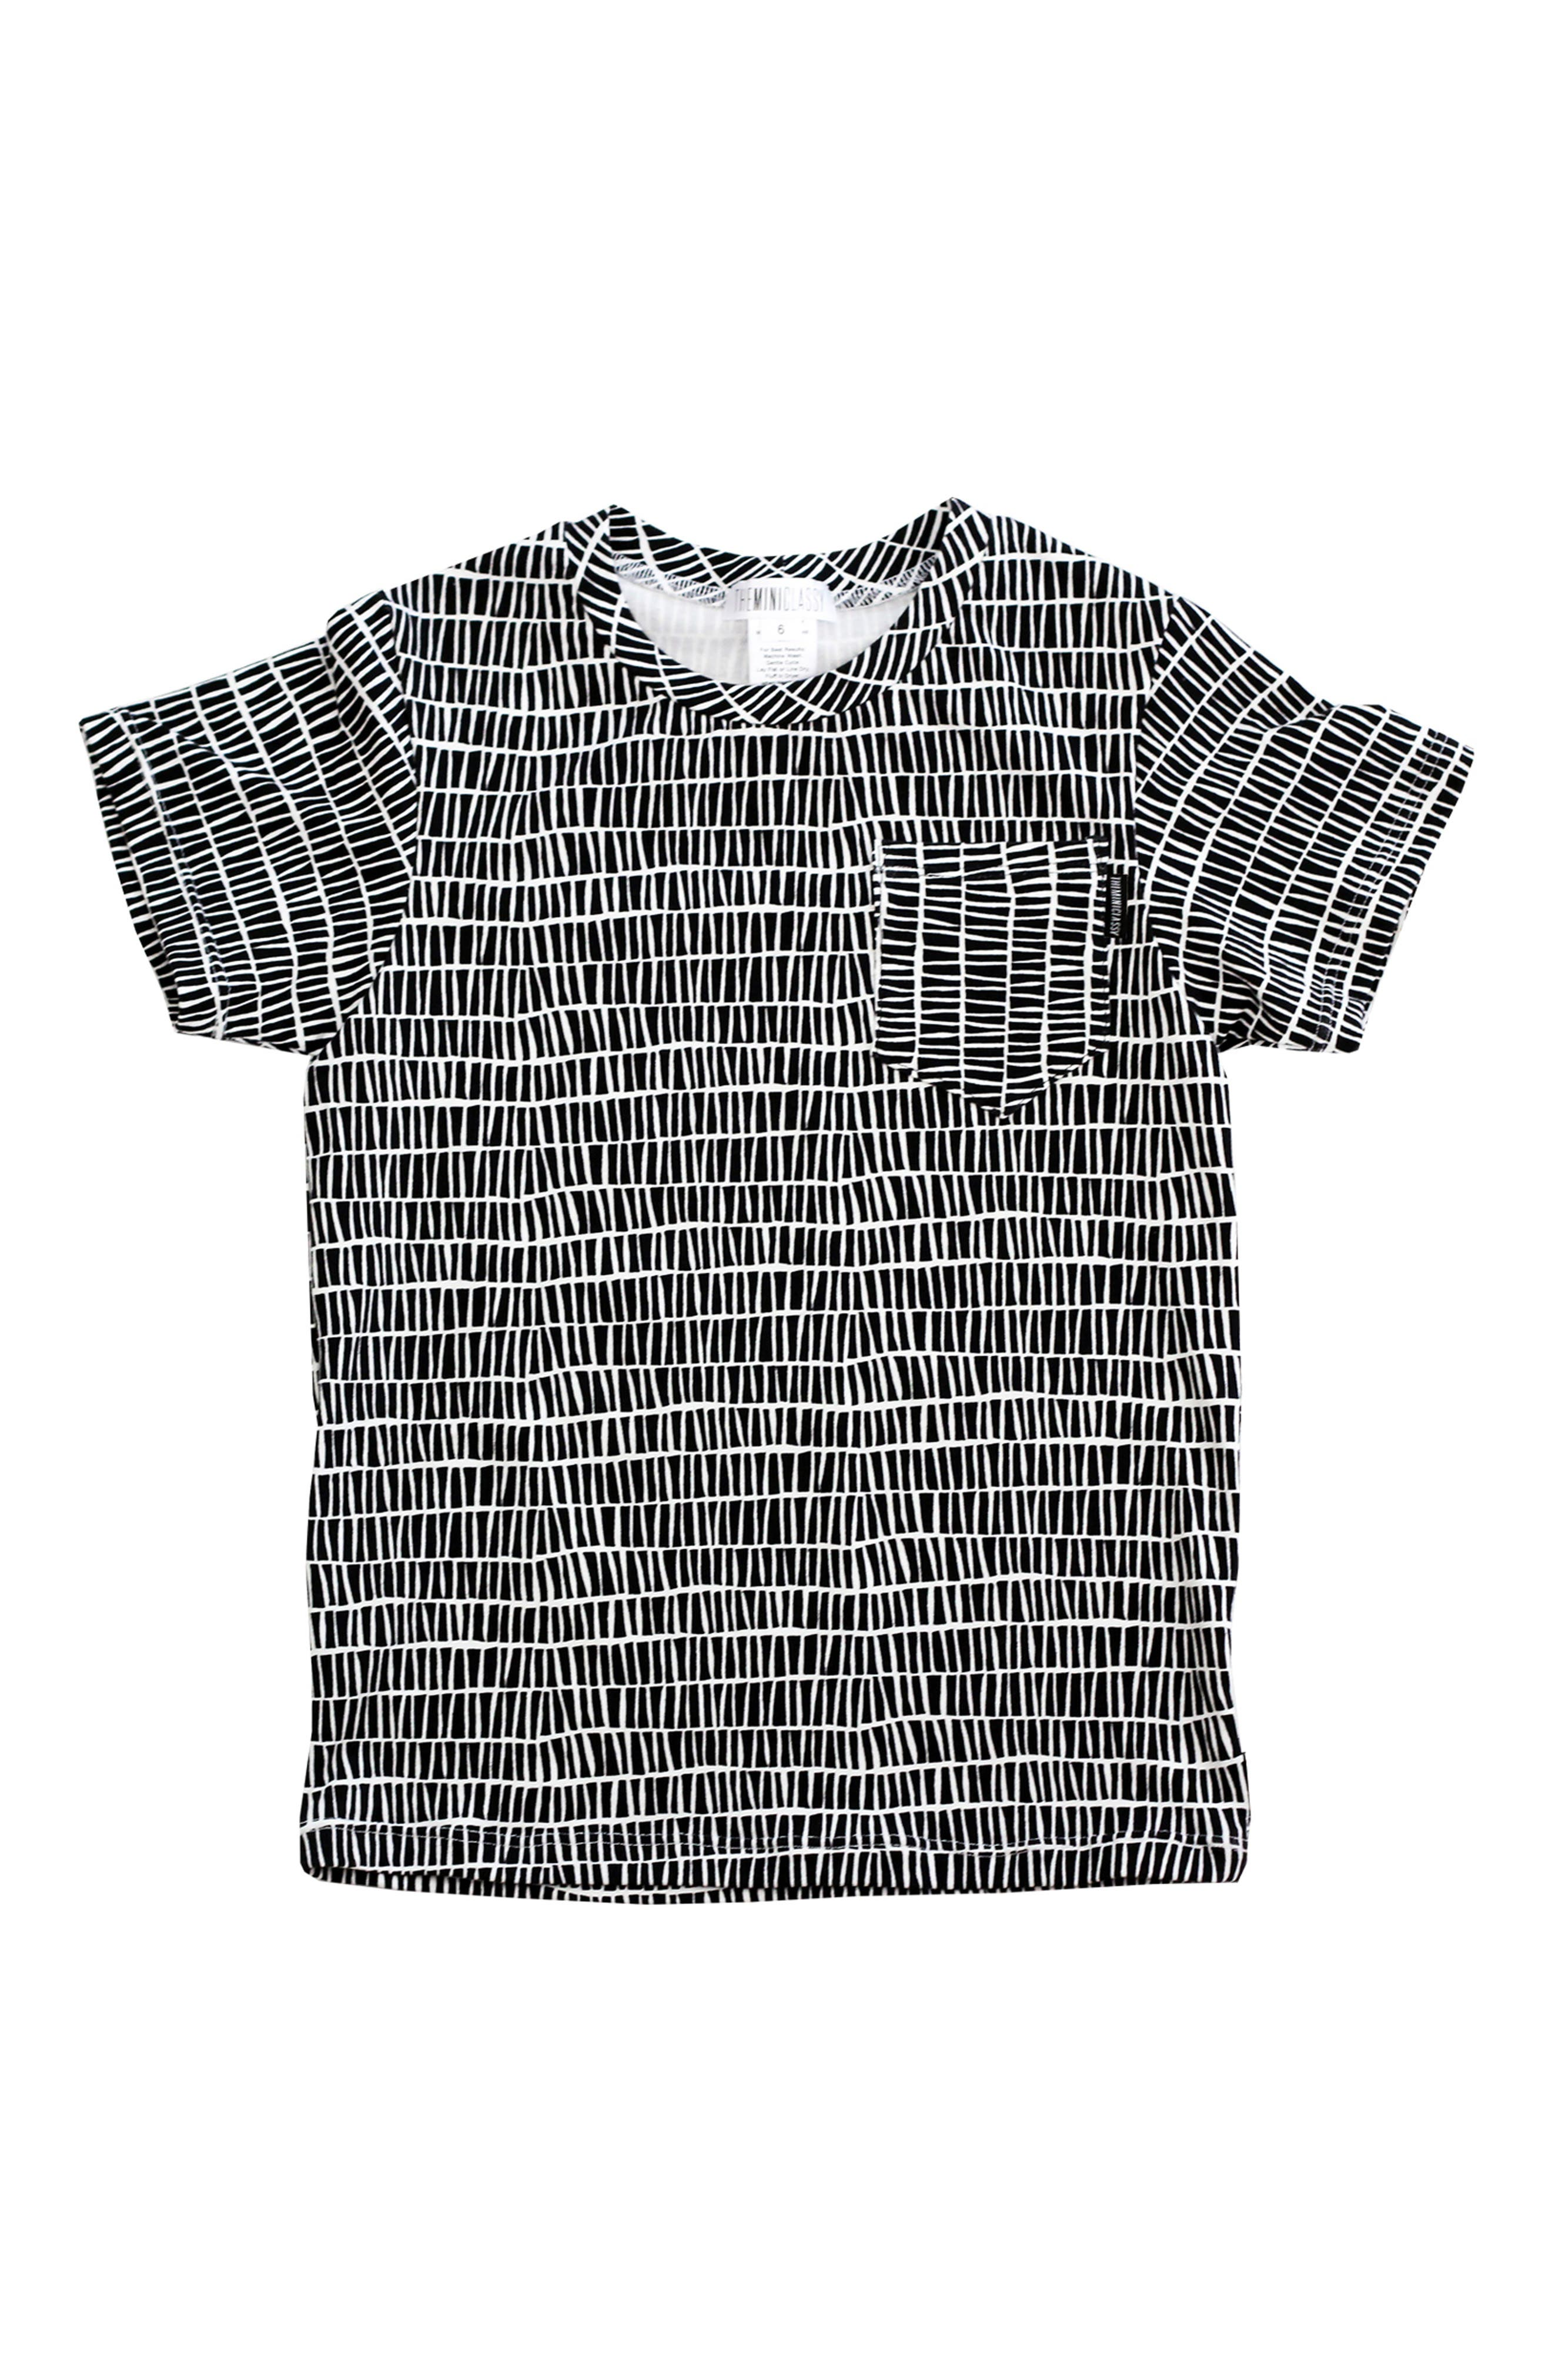 Alternate Image 1 Selected - theMINIclassy The Stix Print Pocket T-Shirt (Toddler Boys & Little Boys)